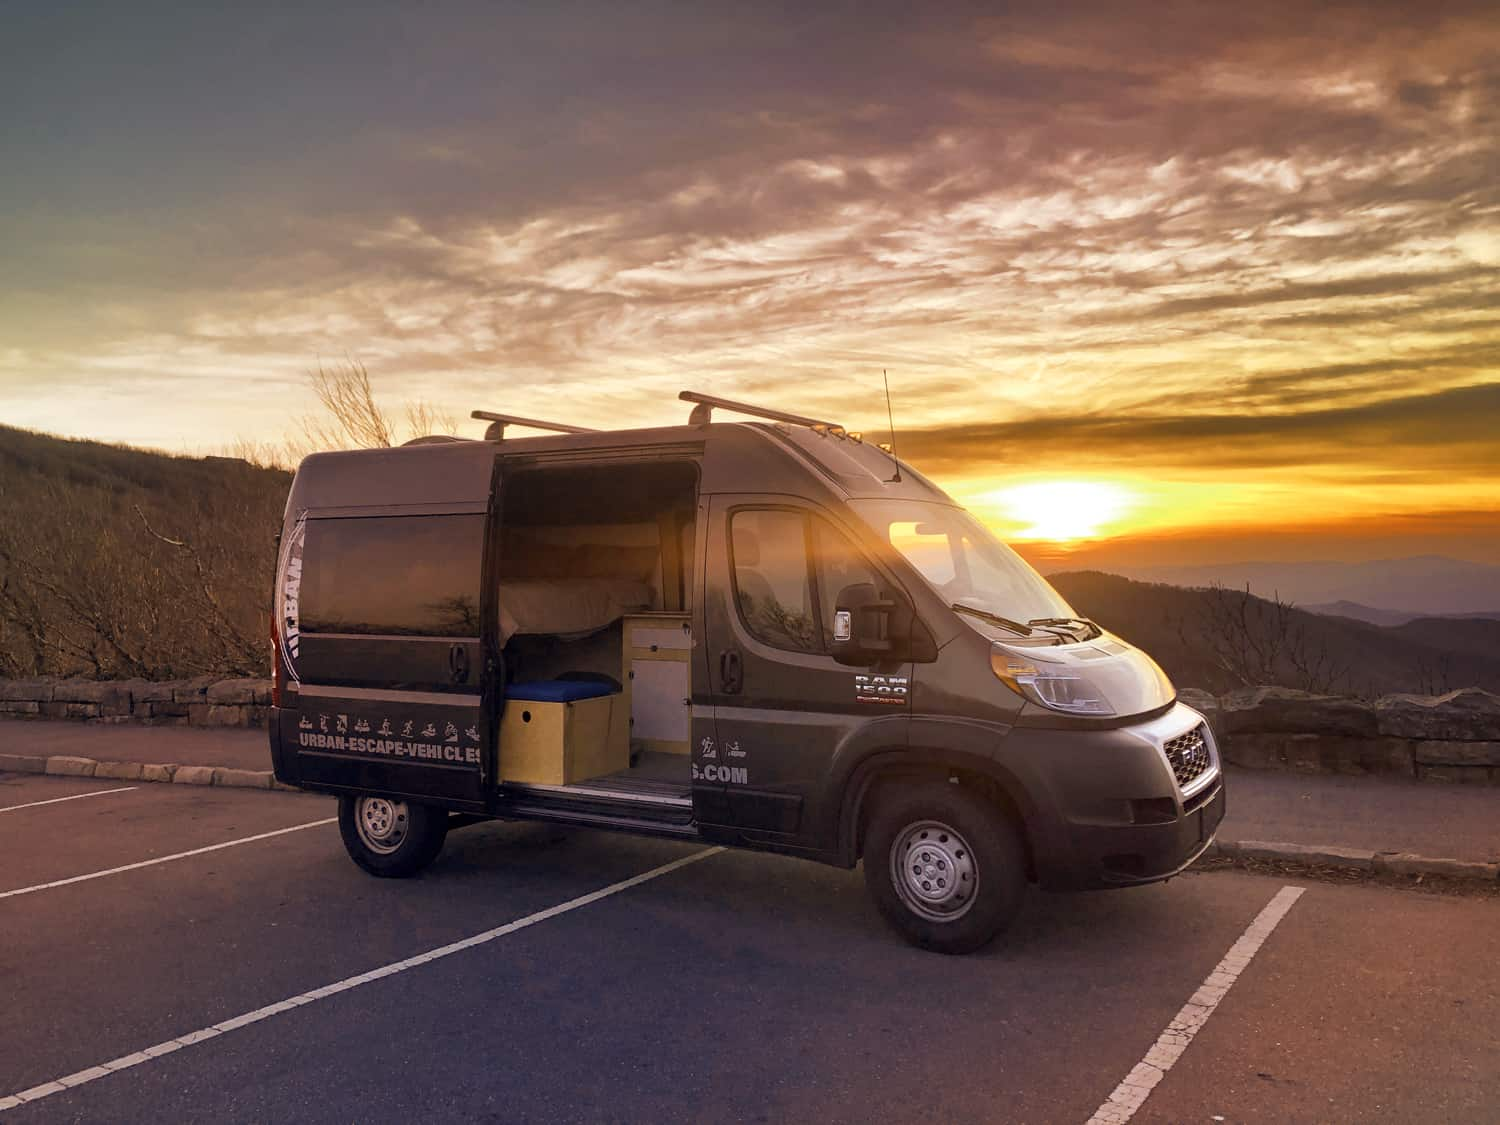 Rent this 2019 Dodge Promaster Van Specially Built For Camping